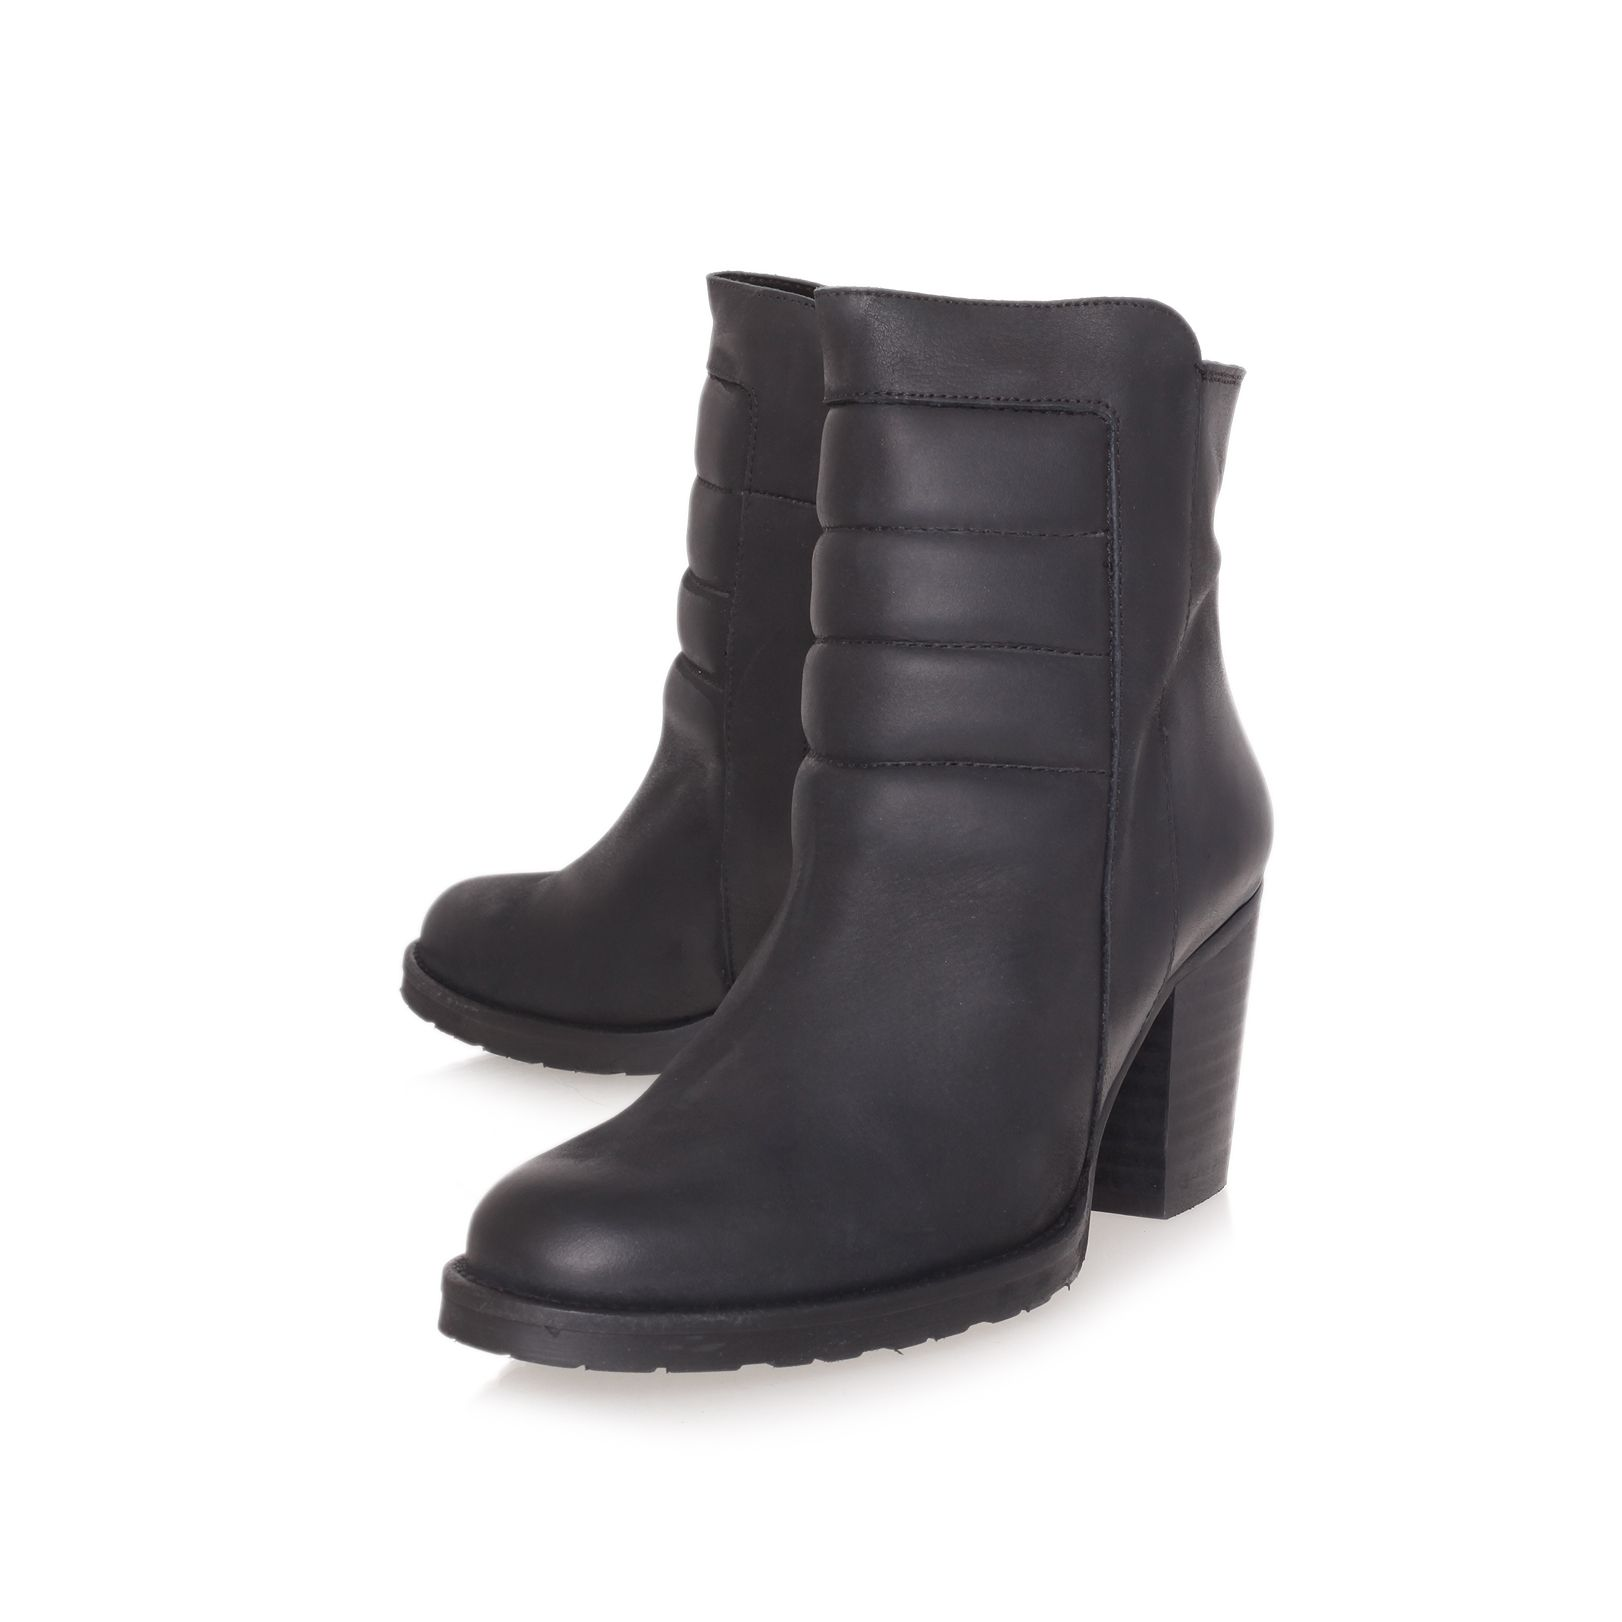 Arno ankle boots